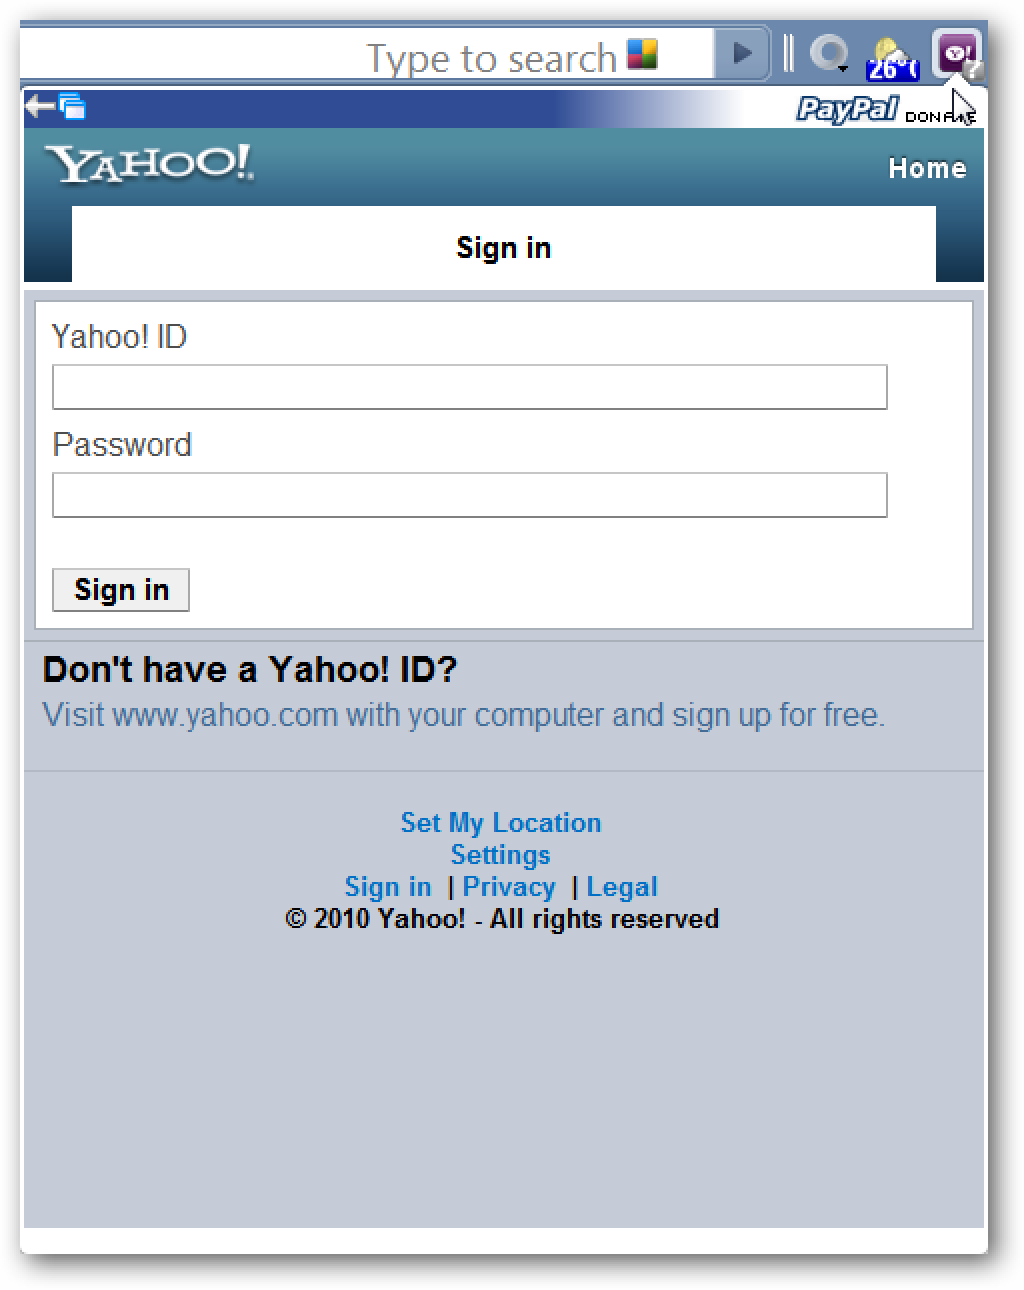 Access Yahoo! E-mail & Services in Chrome